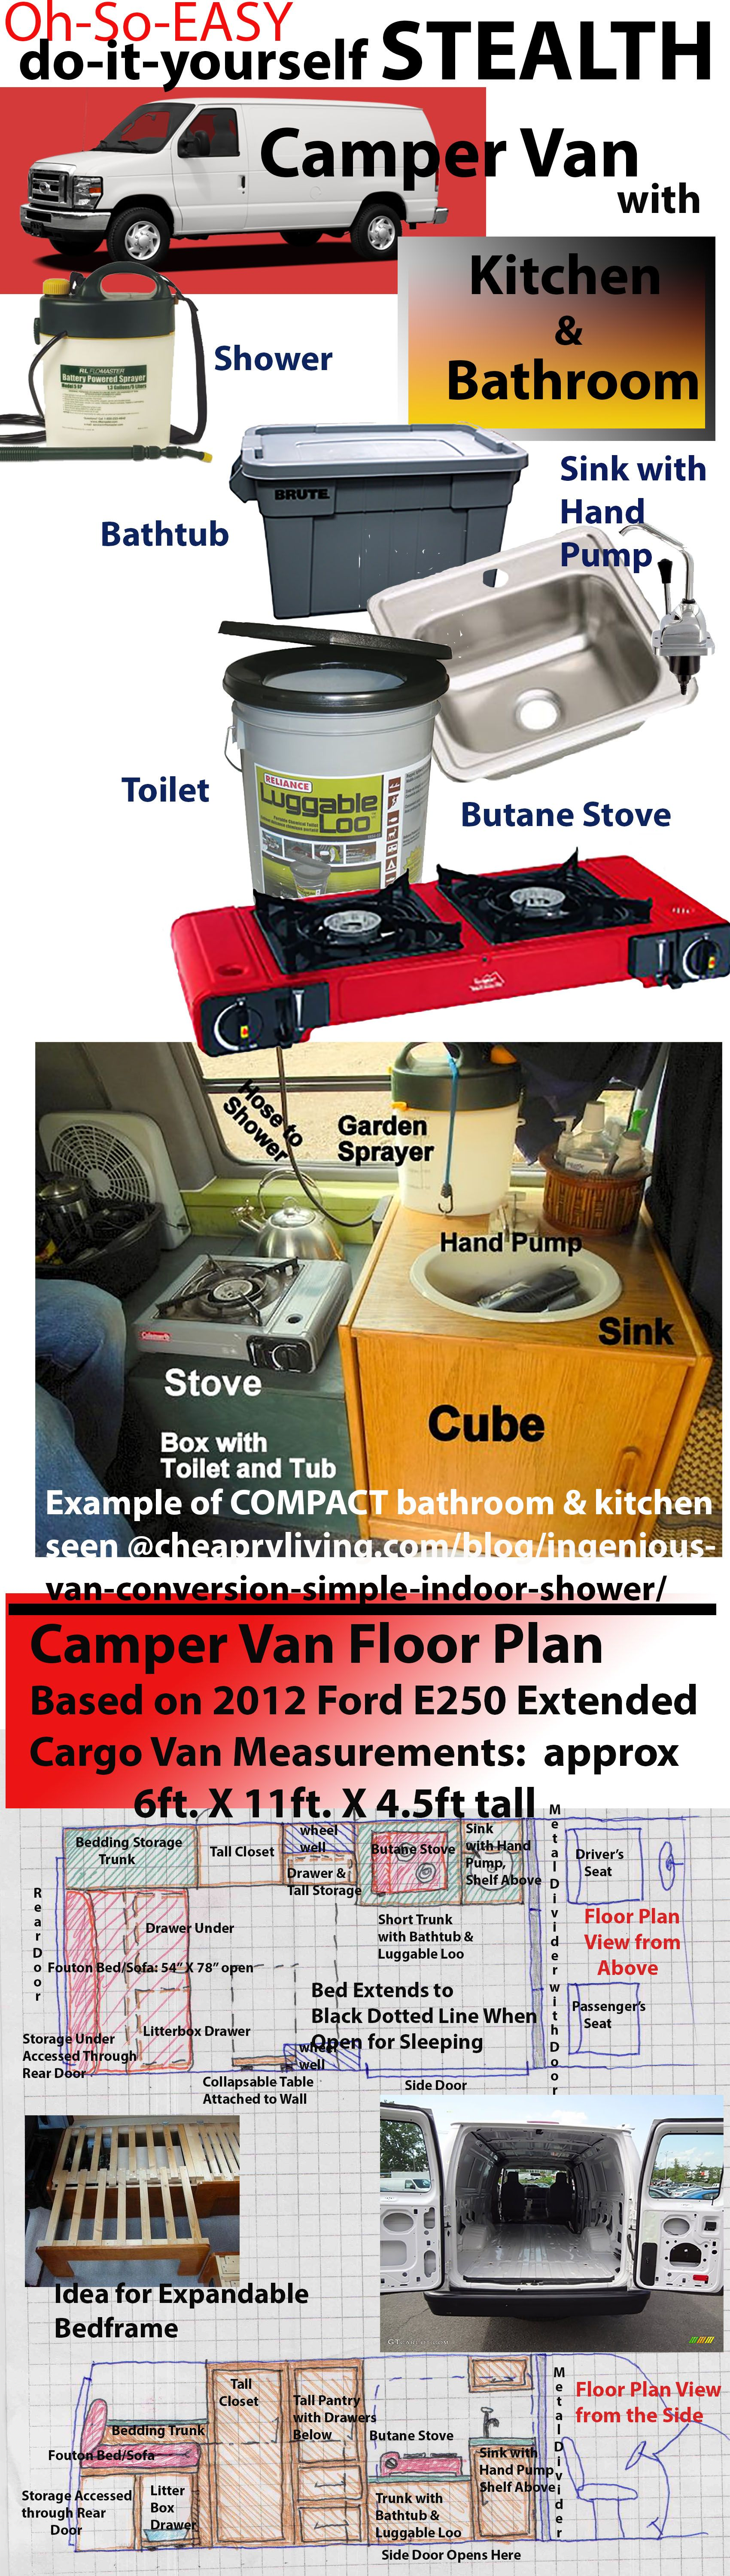 Stealth Camper Van Idea New Living Pinterest Rv Plumbing Diagram Diy With Easy Kitchen And Bath Great For Novice Builds Includes Floor Plan